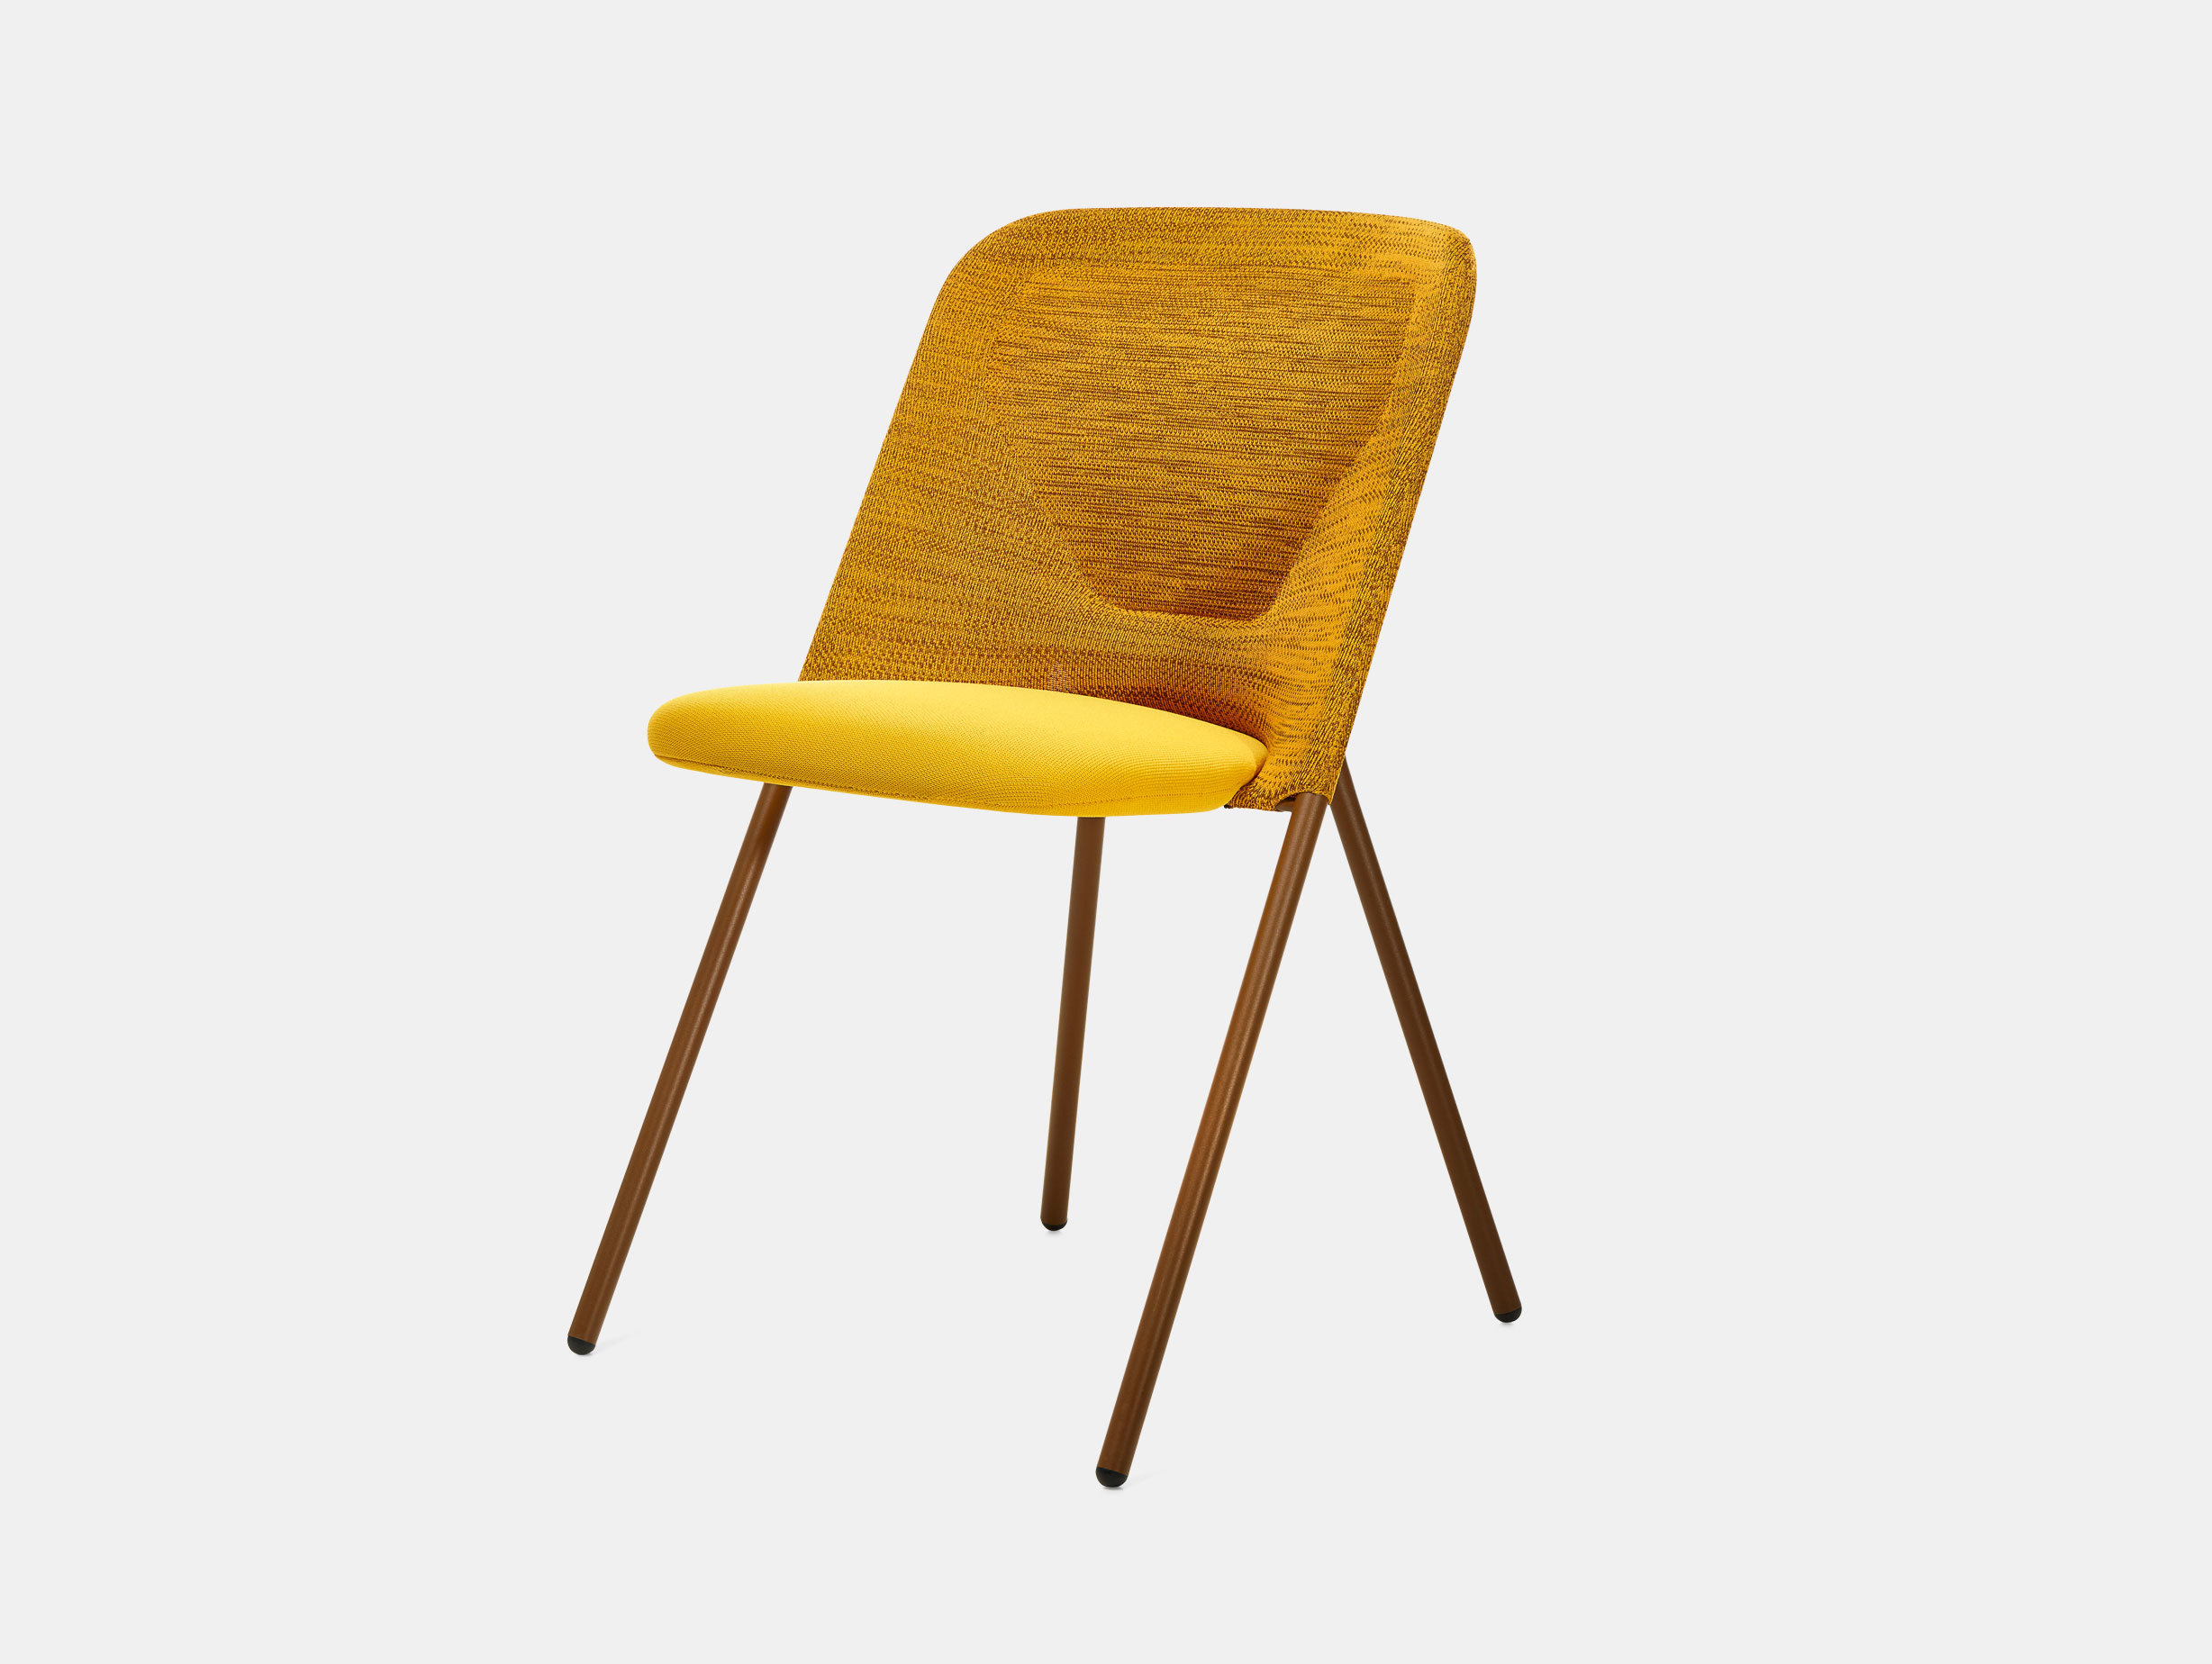 Shift Dining Chair image 1